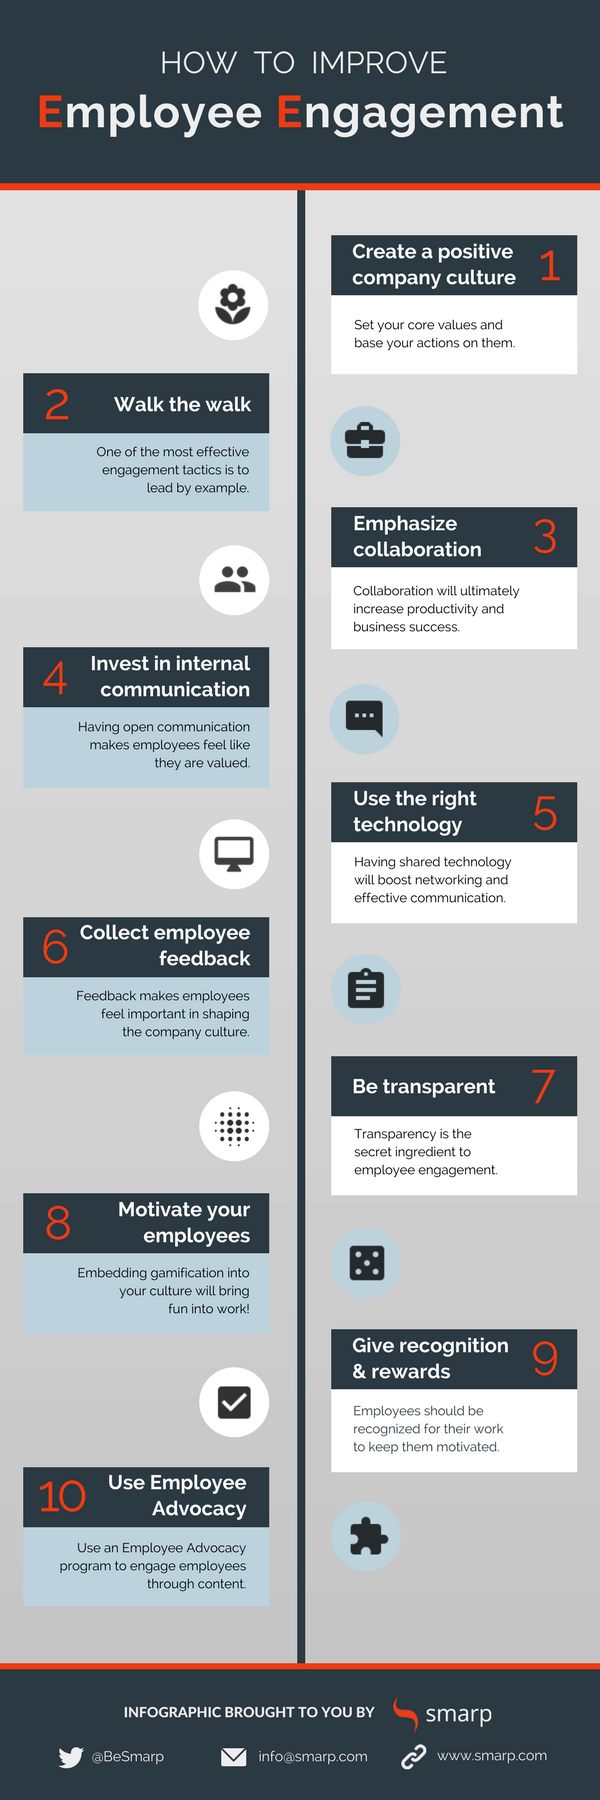 Smarp Infographic On How To Boost Employee Engagement By Creating A Positive W Improve Employee Engagement Employee Engagement Employee Engagement Infographic